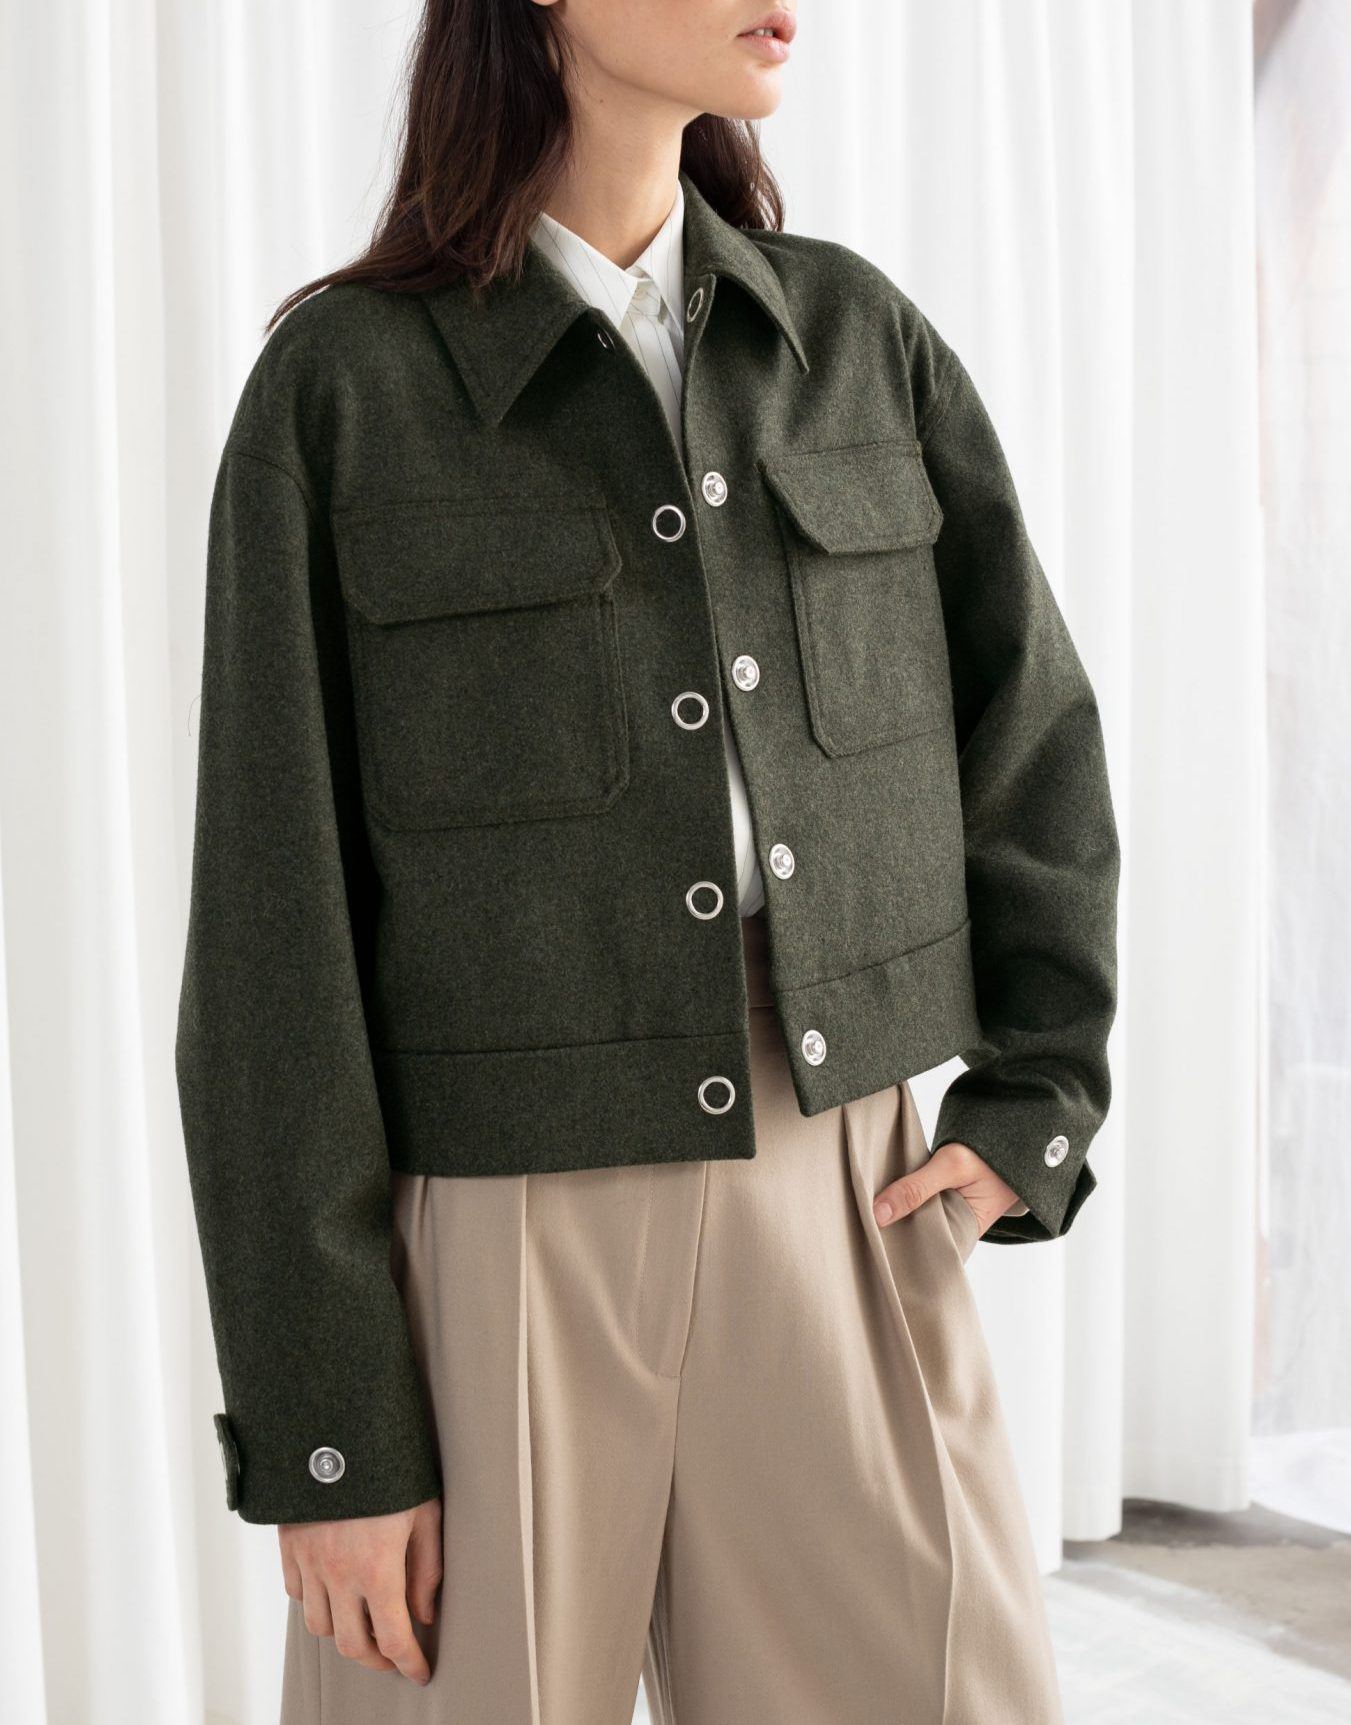 7c135c10d Spring jackets, part 2 - Girls of a Certain Age